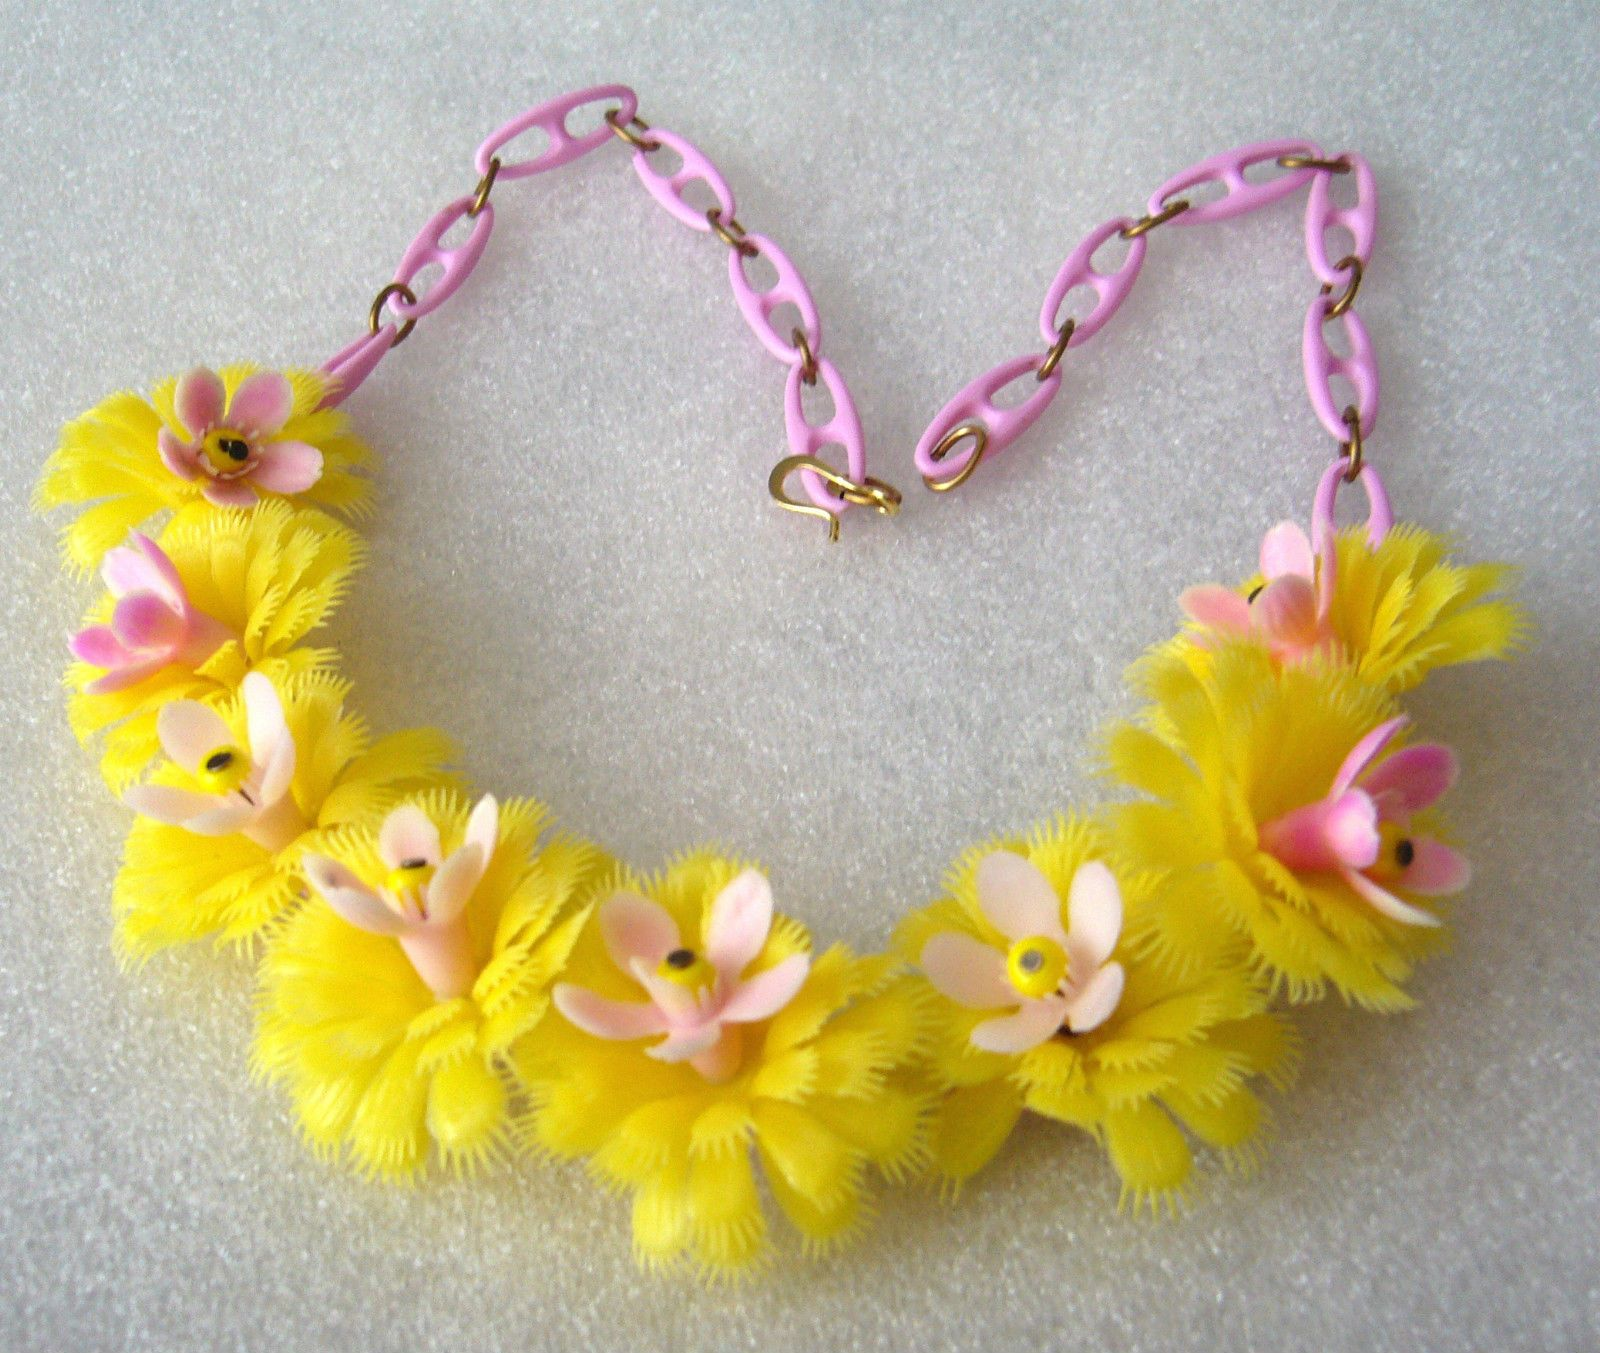 Vintage celluloid soft early plastic yellow flowers necklace vintage celluloid soft early plastic yellow flowers necklace mightylinksfo